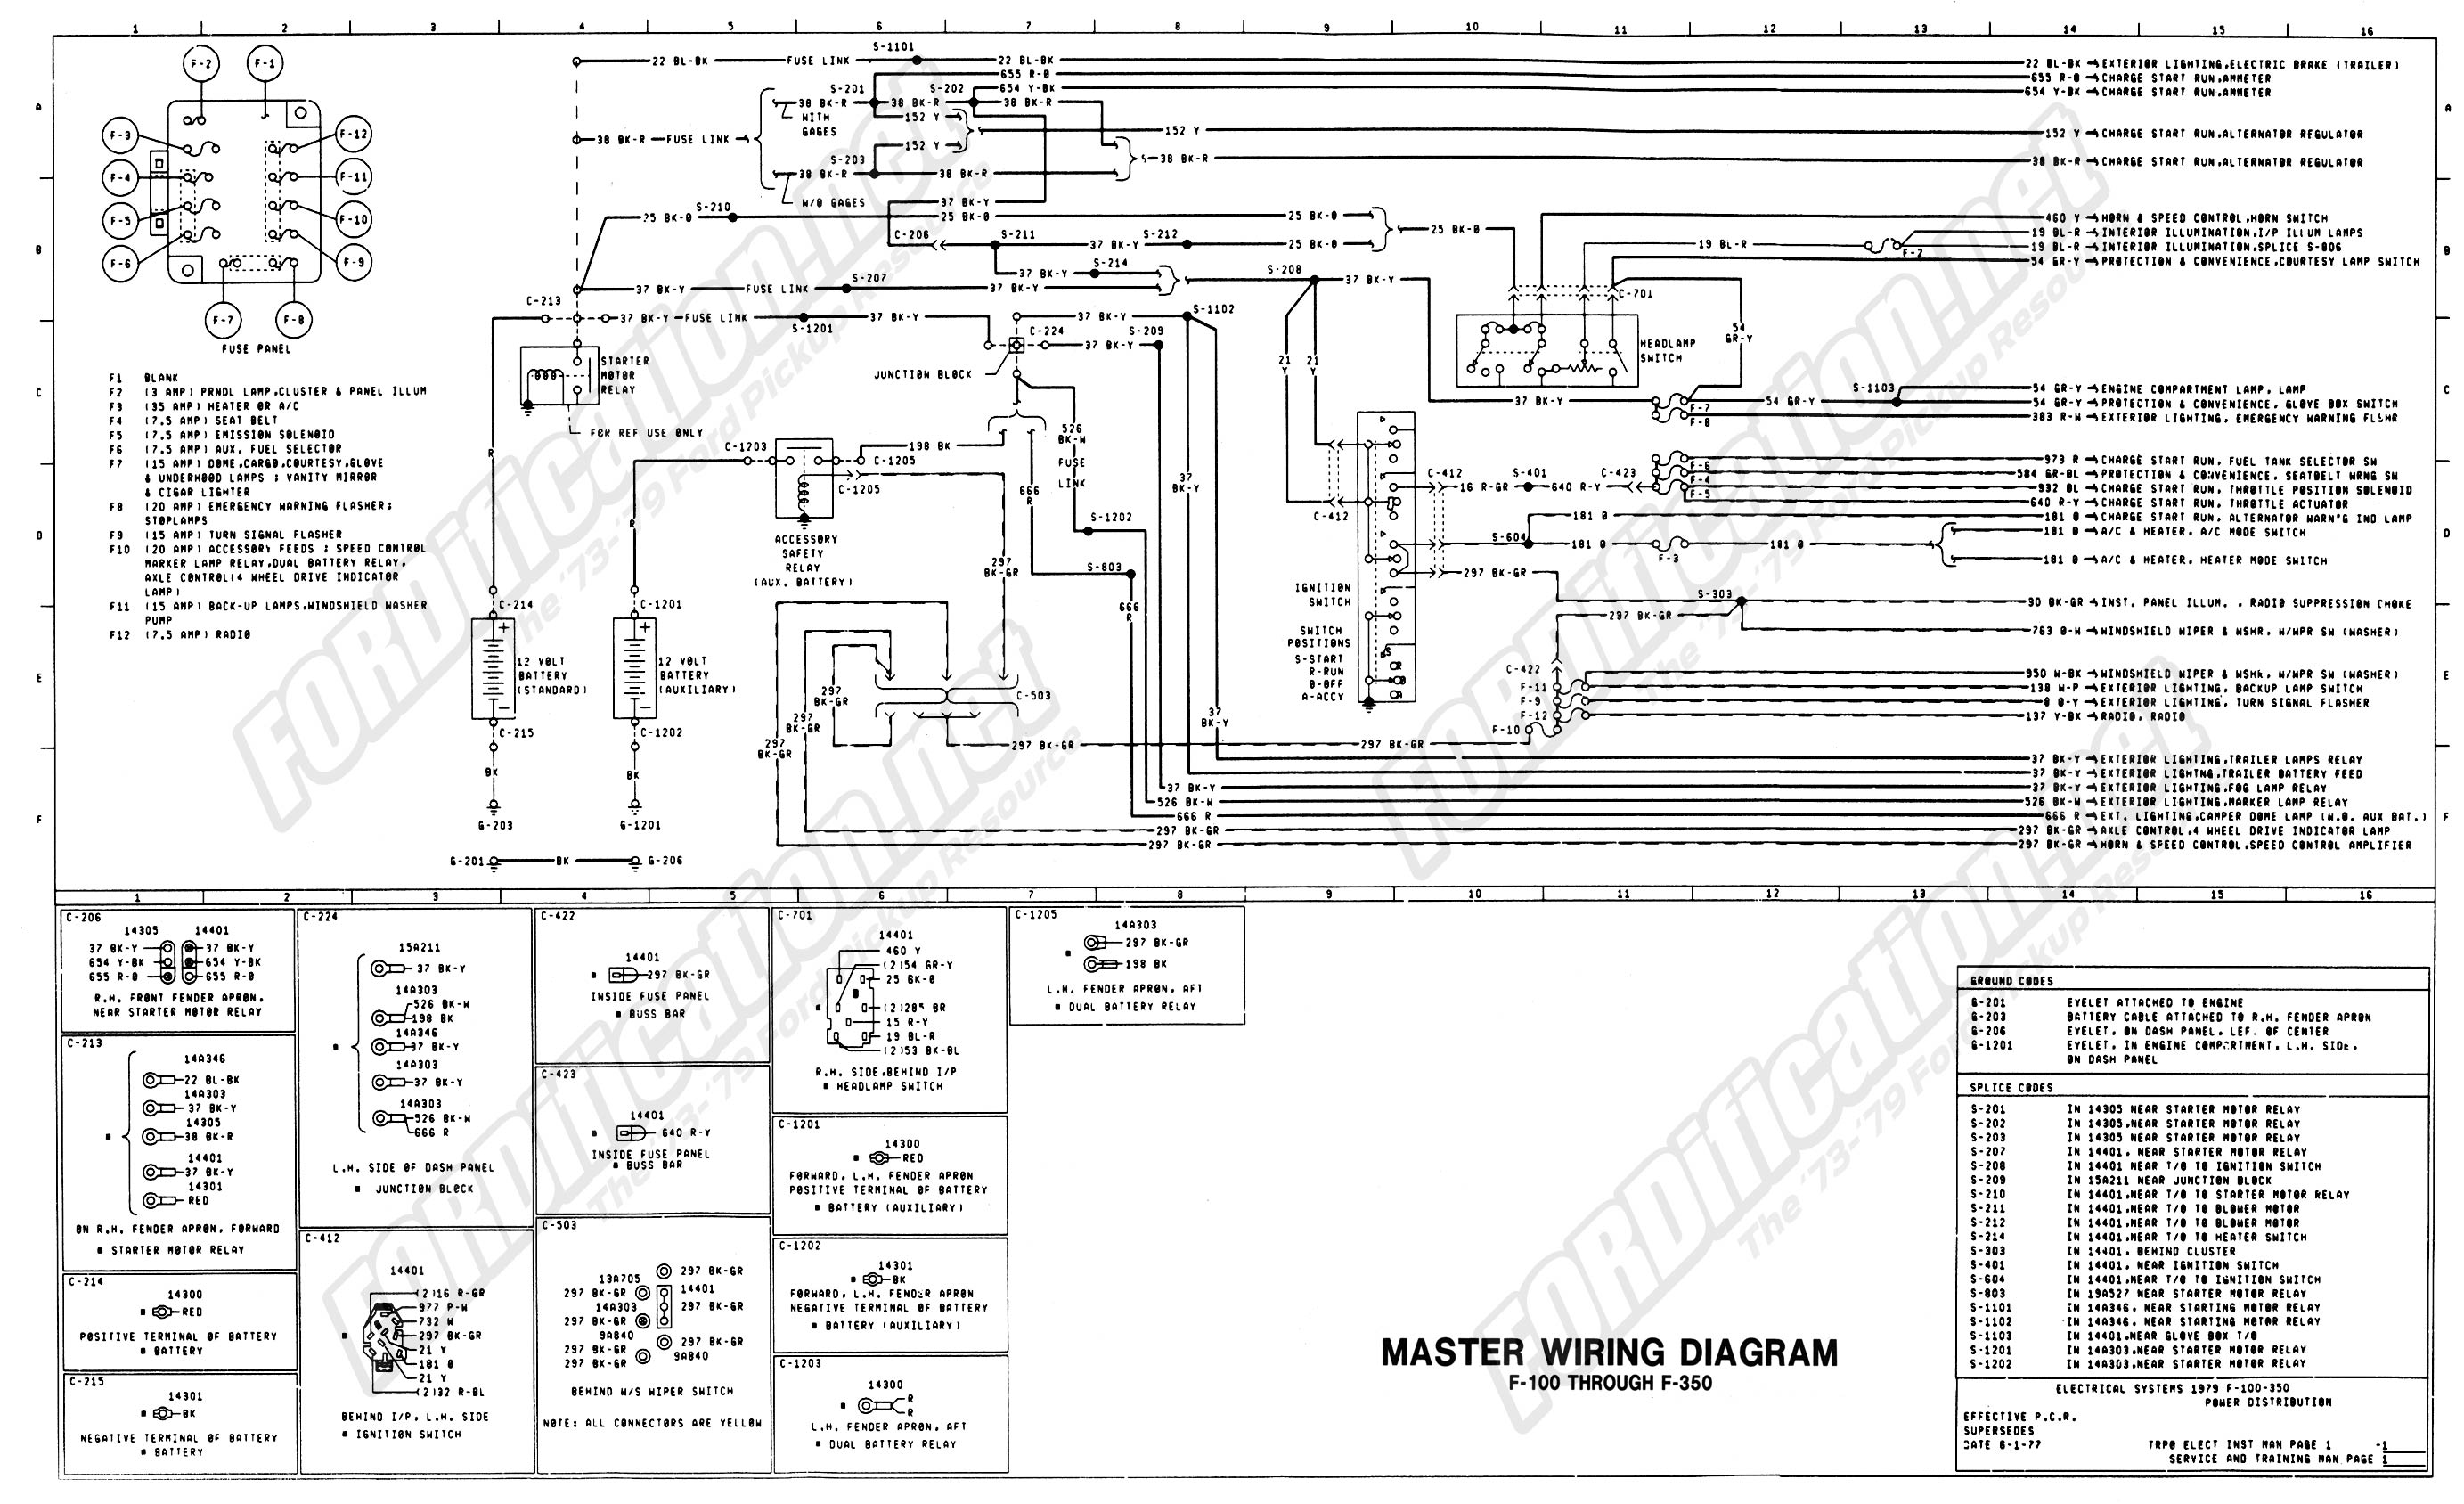 wiring_79master_1of9 1973 1979 ford truck wiring diagrams & schematics fordification net 1970 ford wiring diagram at readyjetset.co